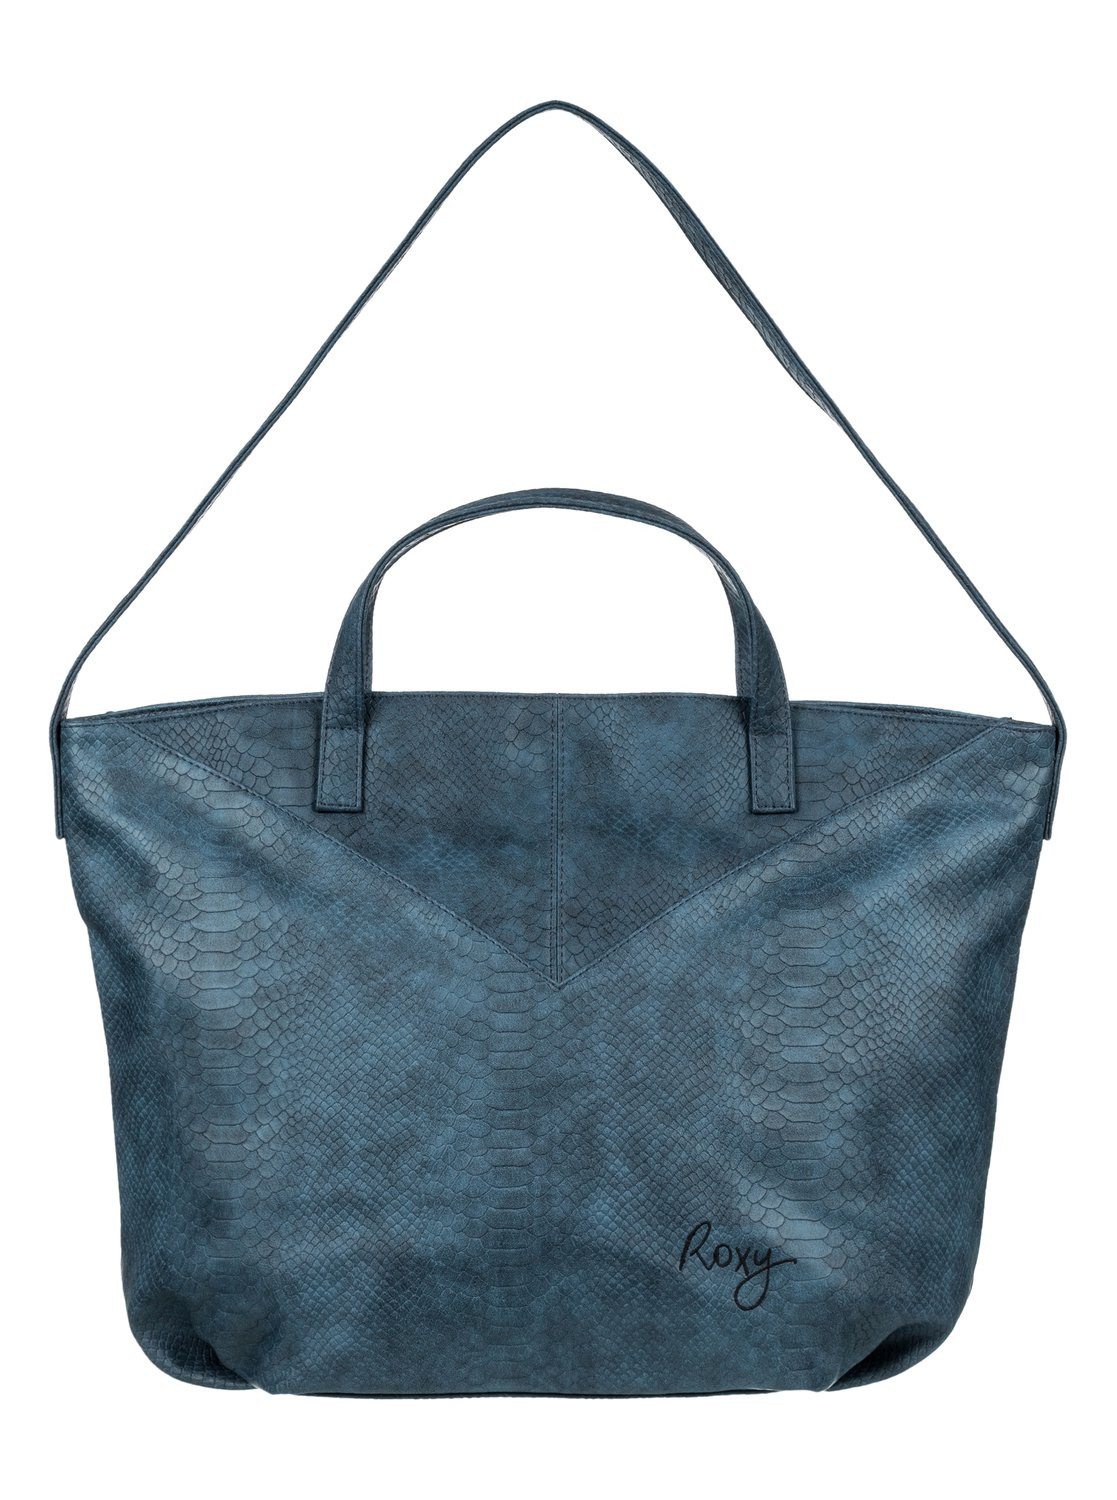 West Feelings - Bolsa Tote para Mujer Roxy